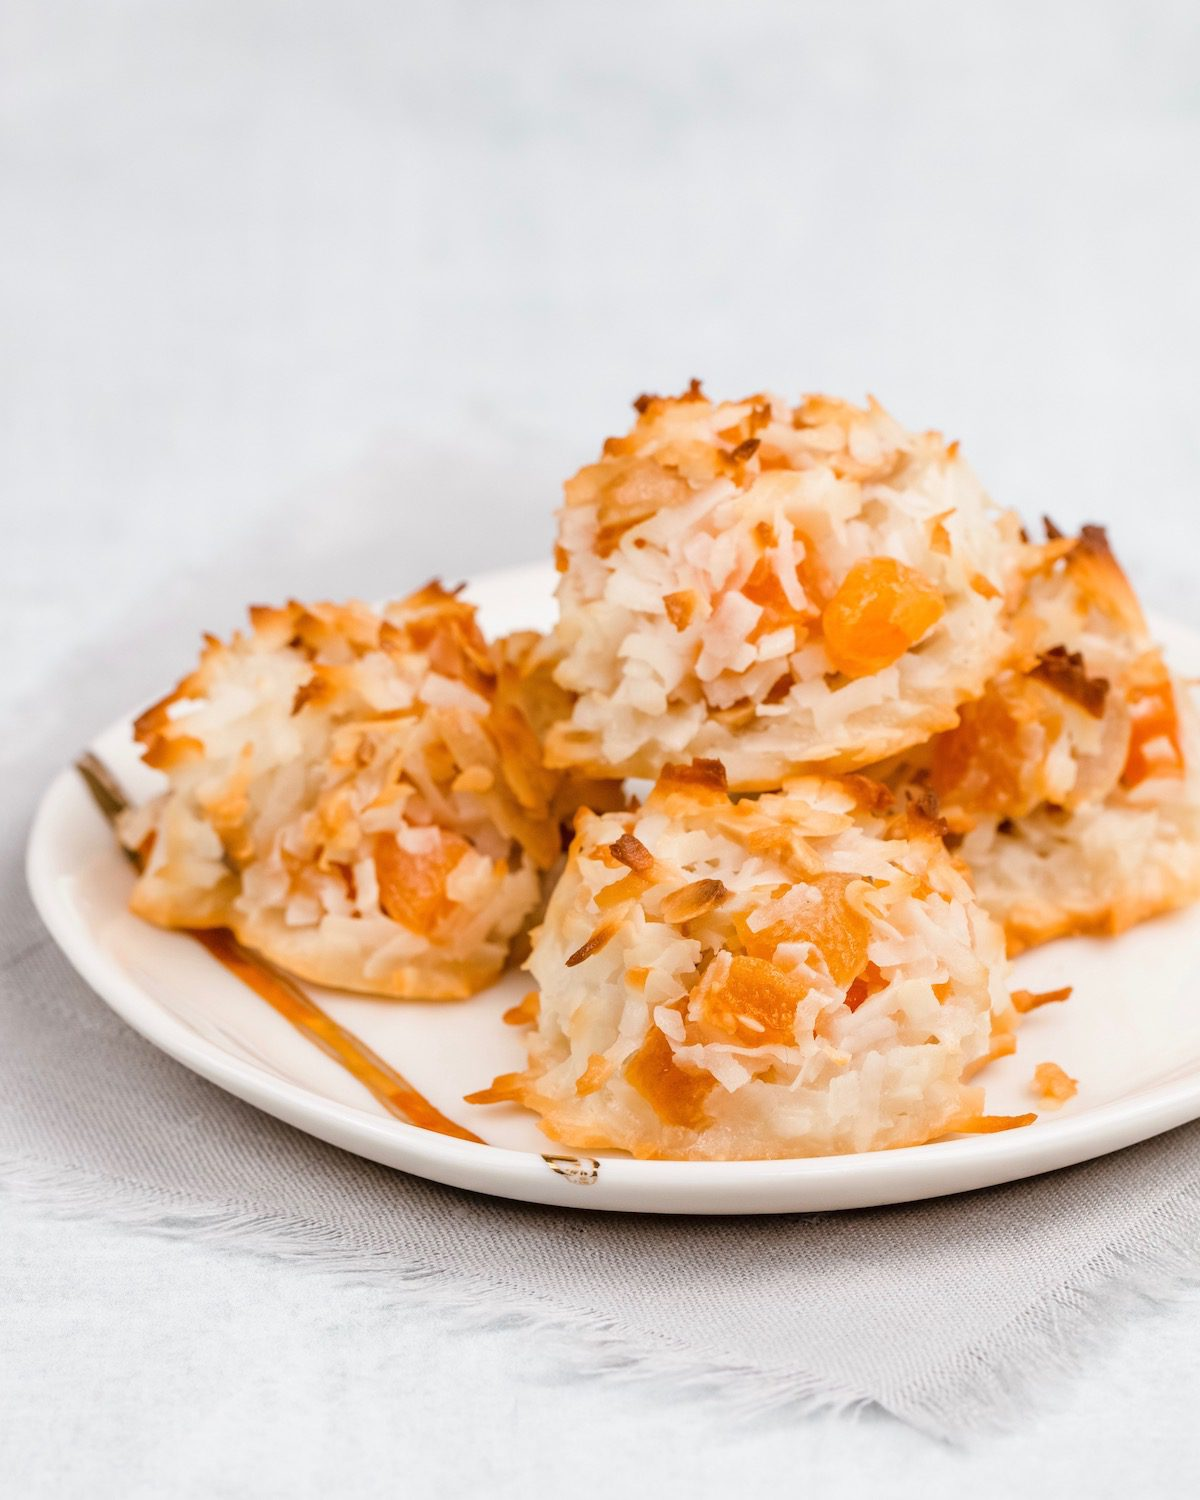 coconut macaroons with apricots on a white plate